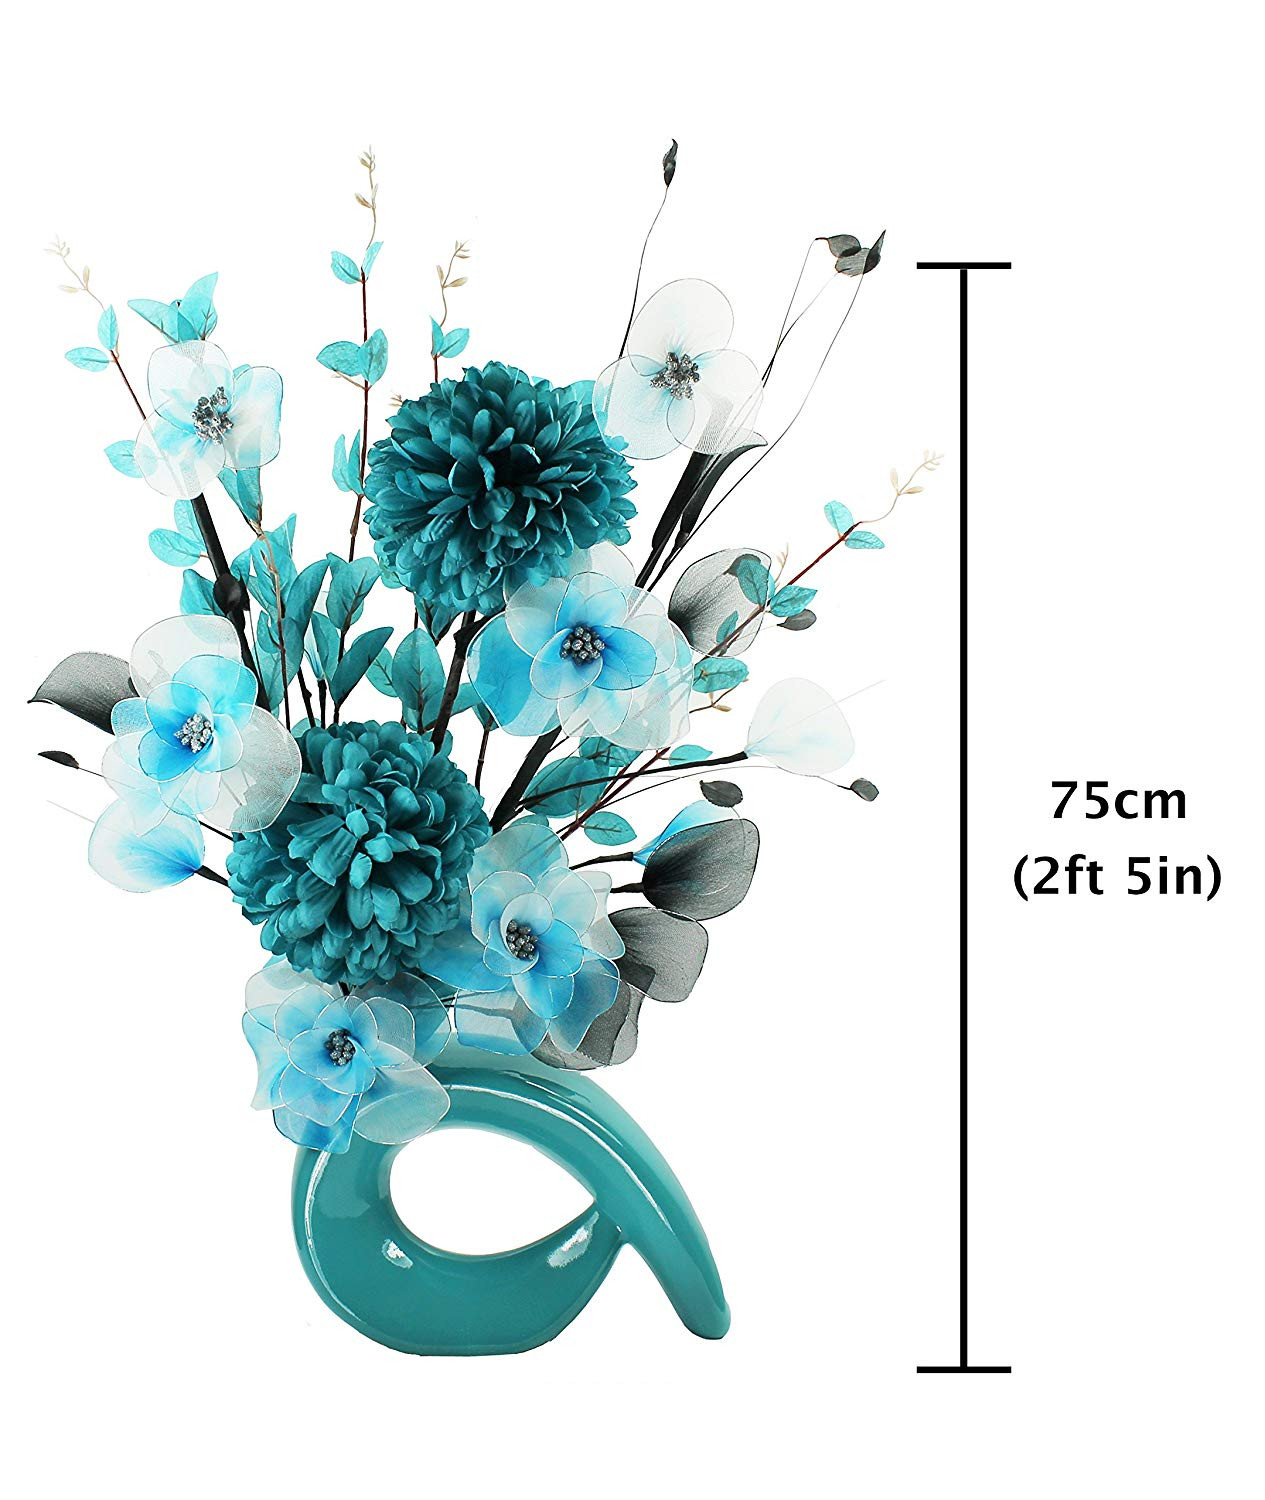 small fake flowers in vase of turquoise blue vase with teal blue and white artificial flowers with turquoise blue vase with teal blue and white artificial flowers ornaments for living room window sill home accessories 75cm amazon co uk kitchen